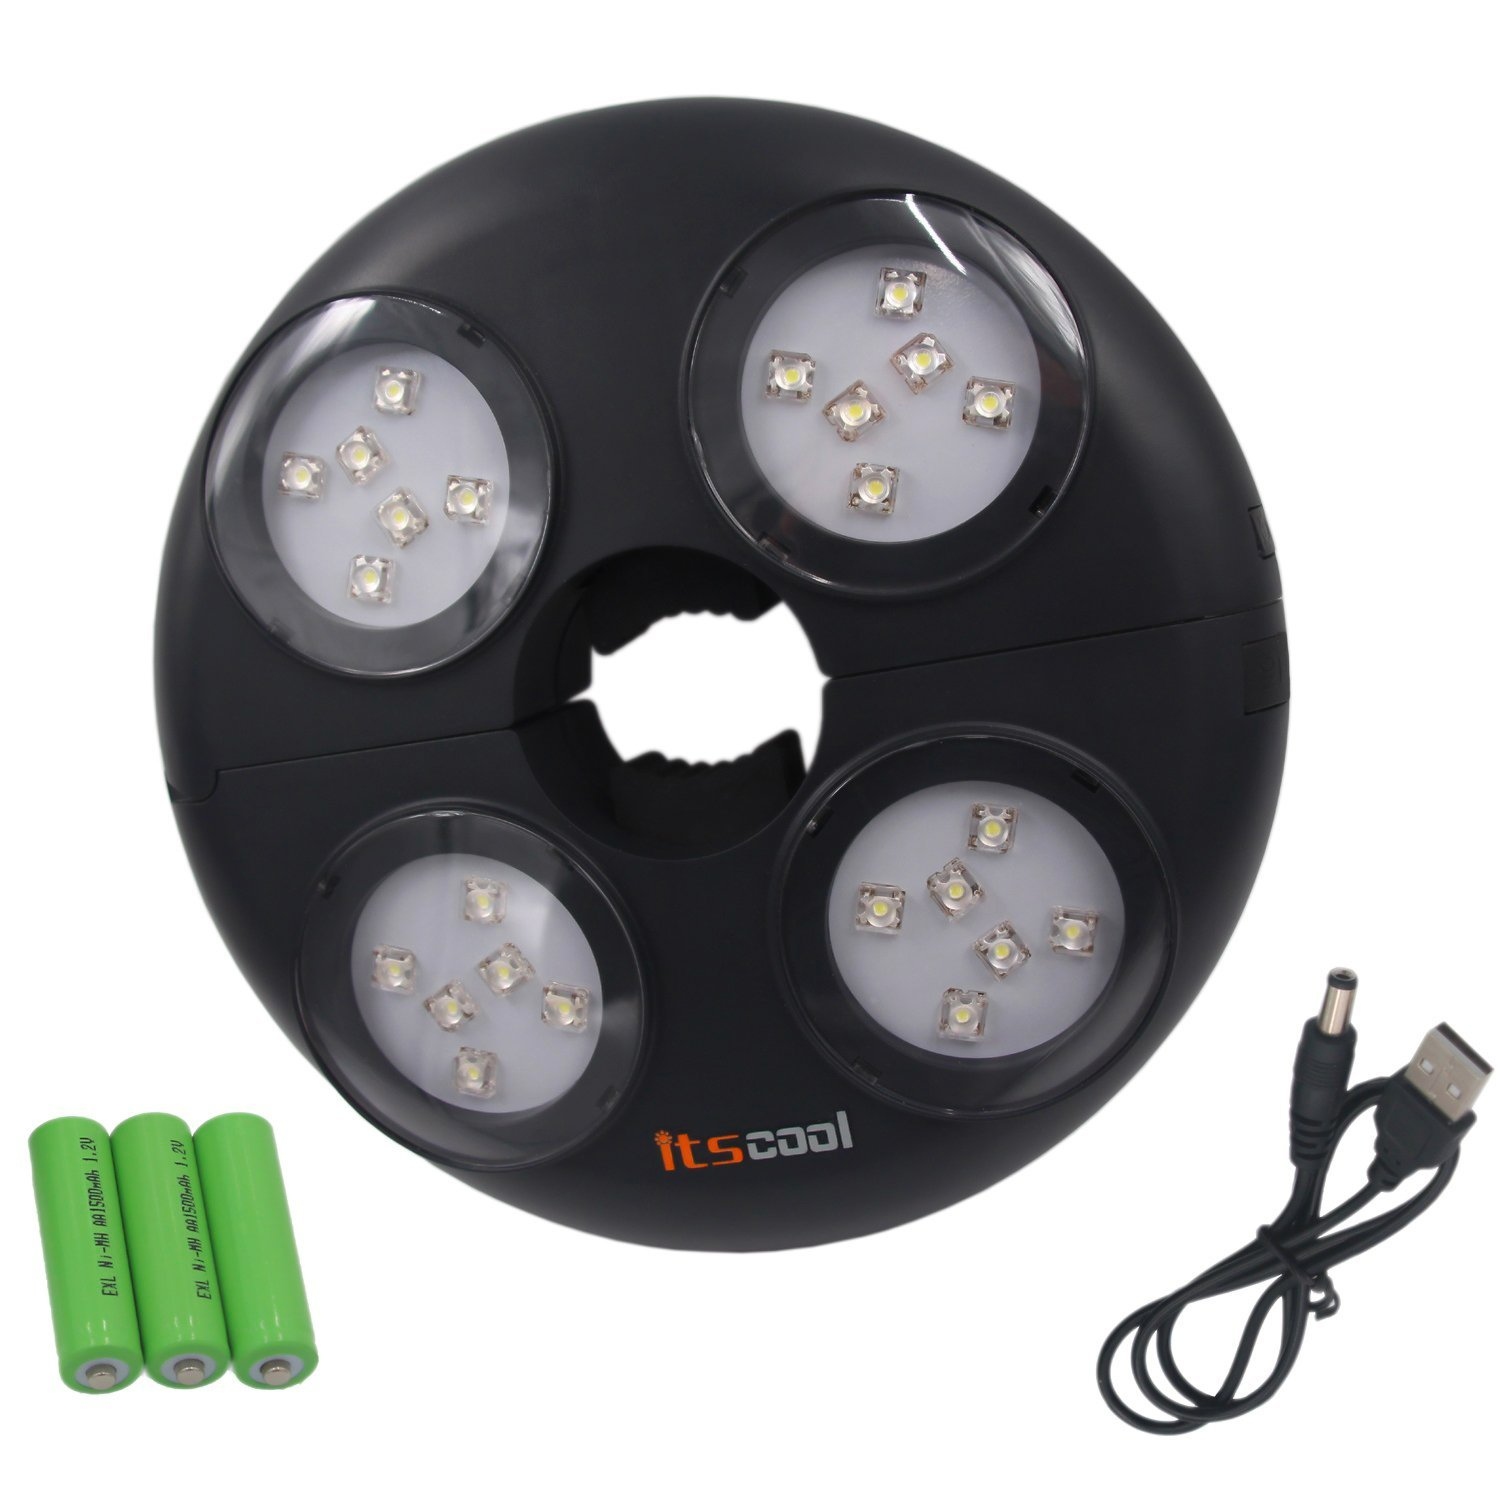 Itscool Umbrella Light Parasol Pole Light with 24pcs High Brightnes LED 4500mAh Rechargeable Battery Inside 280 Lumens